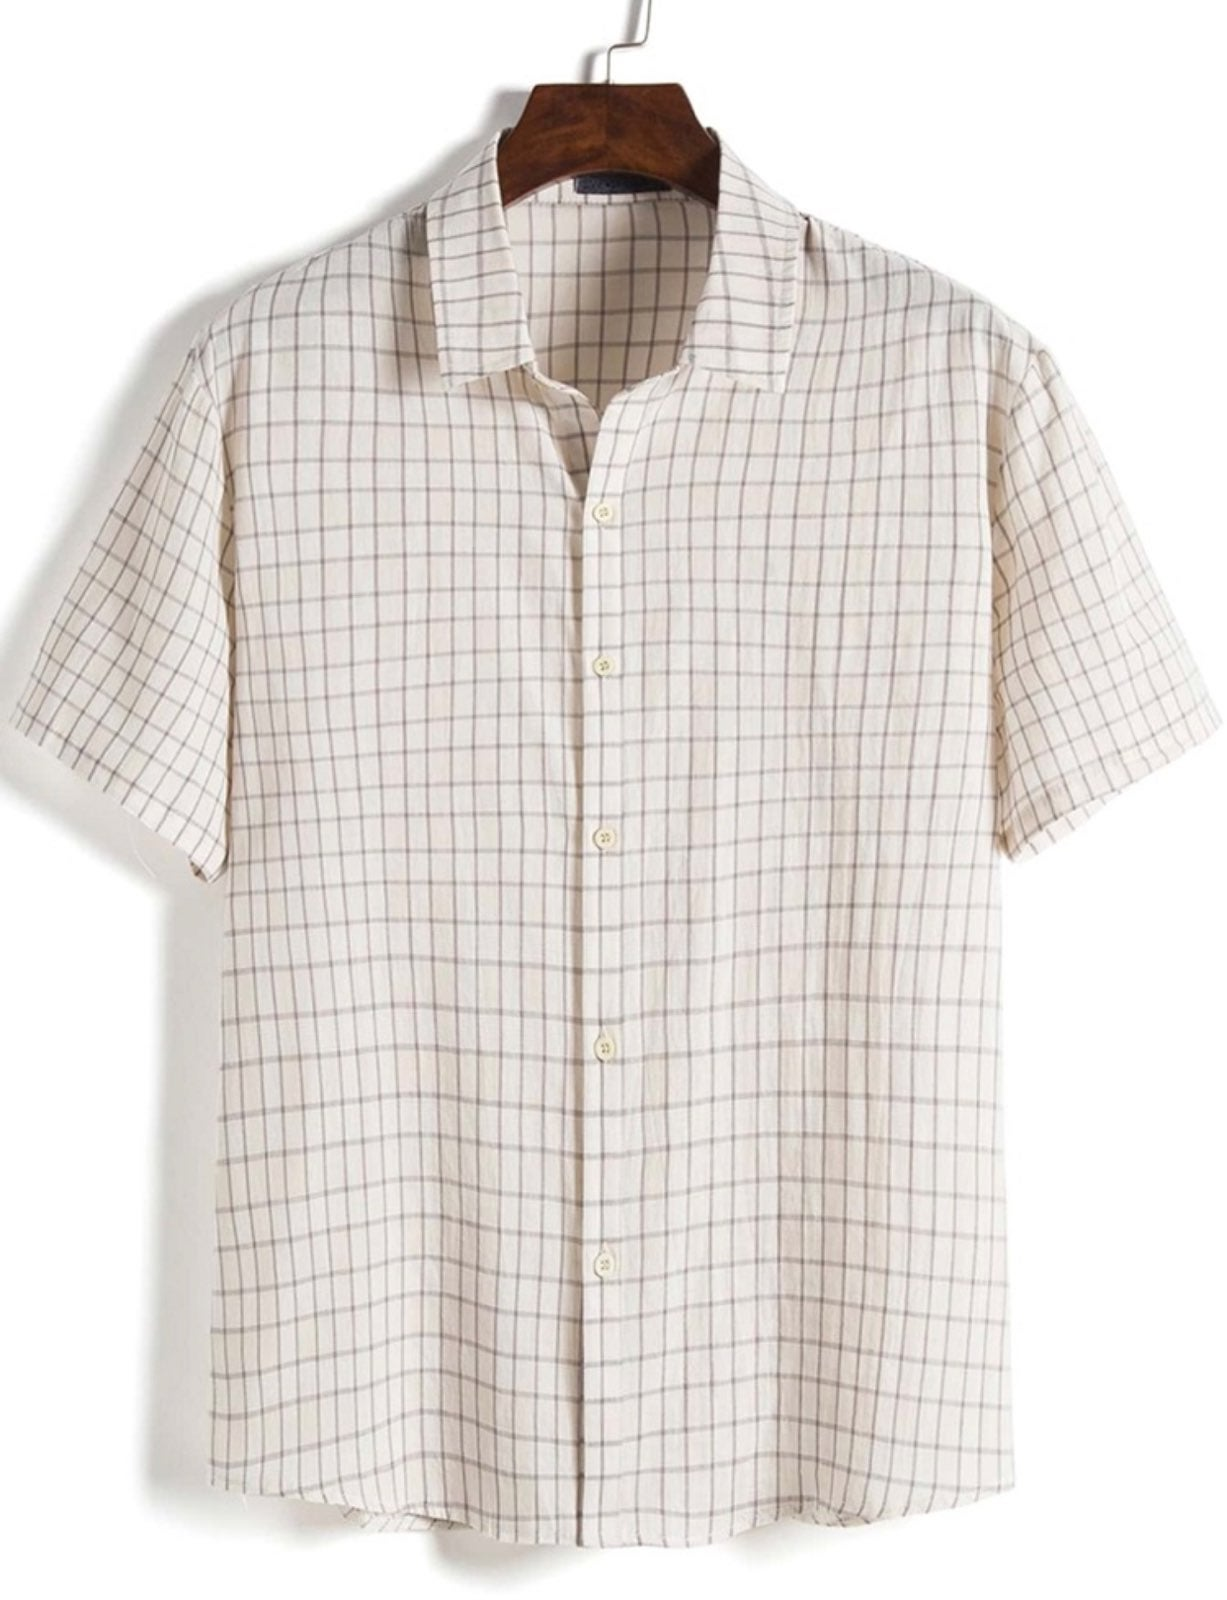 Men's Button Up Shirt!